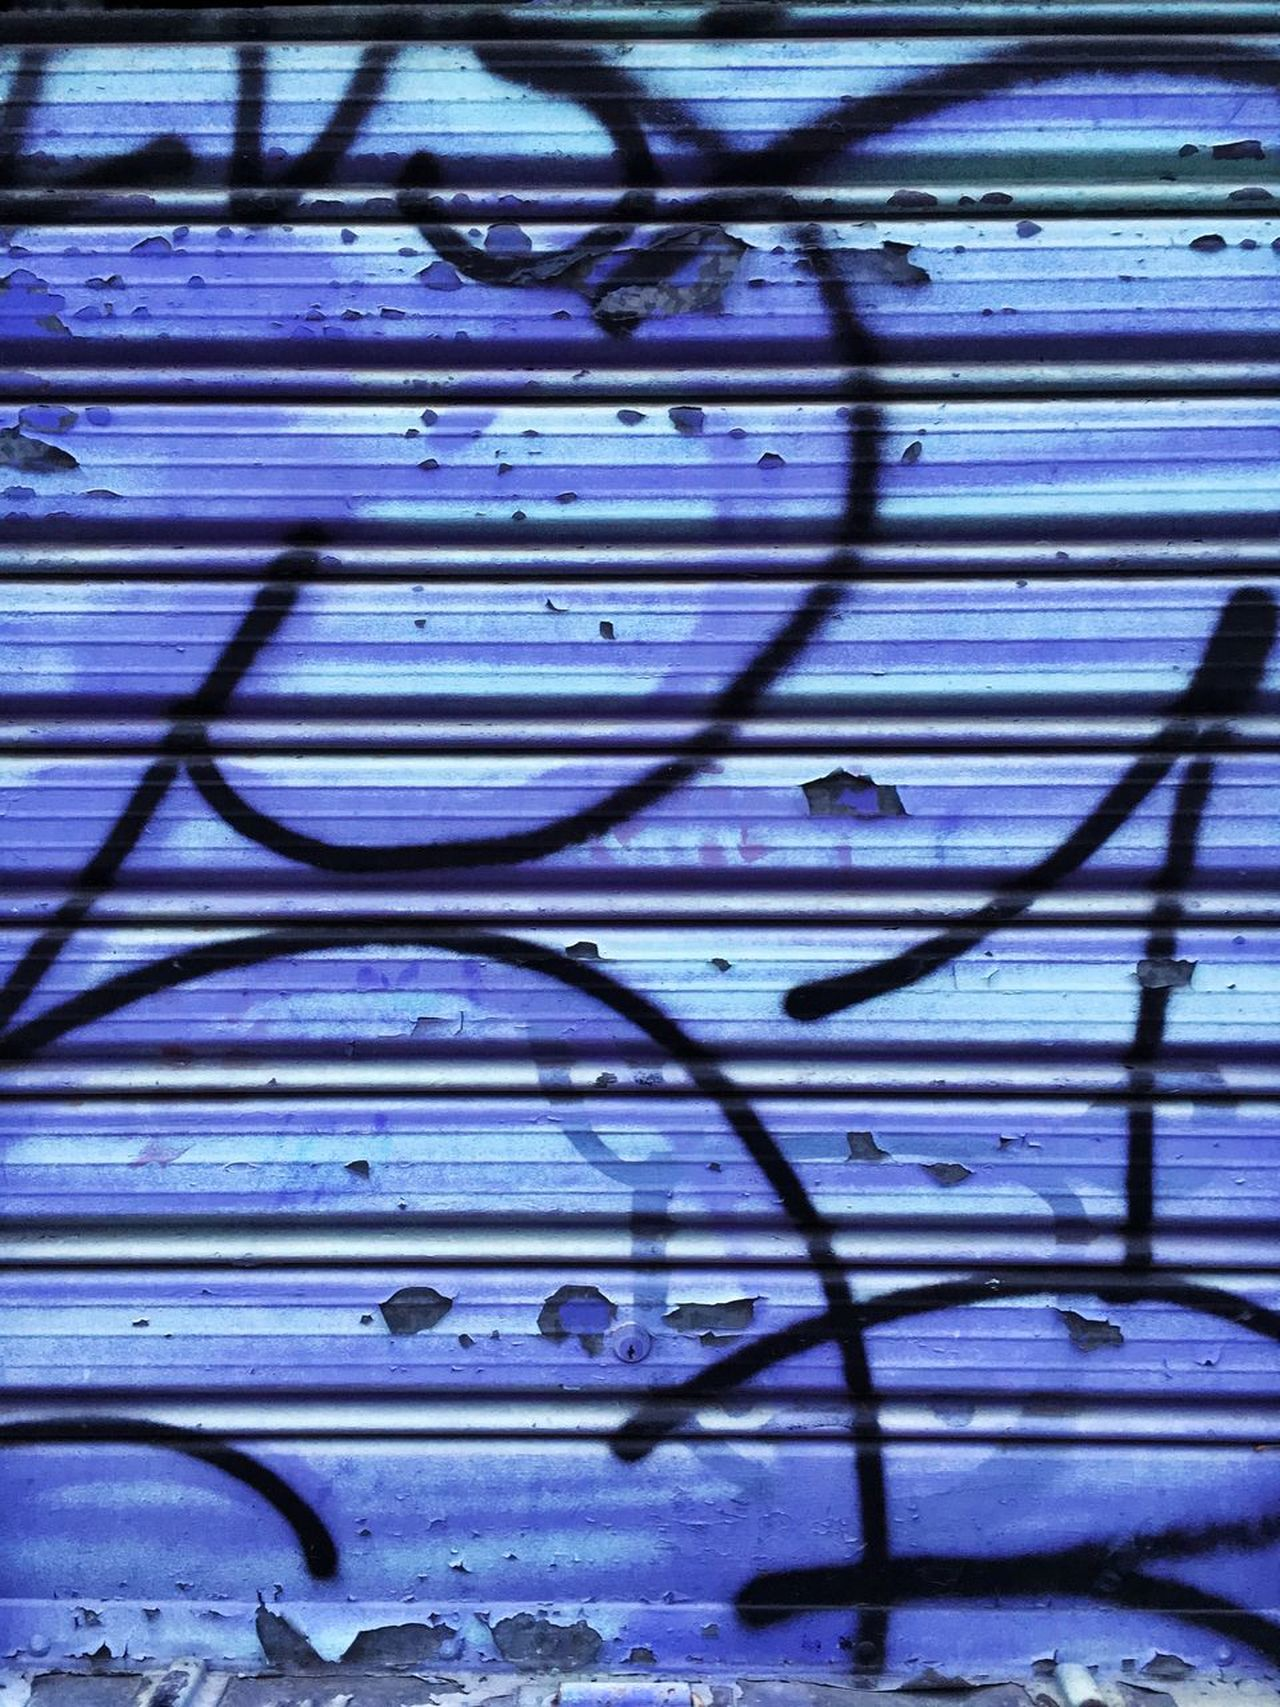 Ruination and paint on a closed gate. Backgrounds Blue Blue Color Closed Drawings Gate Lock Pattern Purple Rusty Shutter Tagged Tags Urban